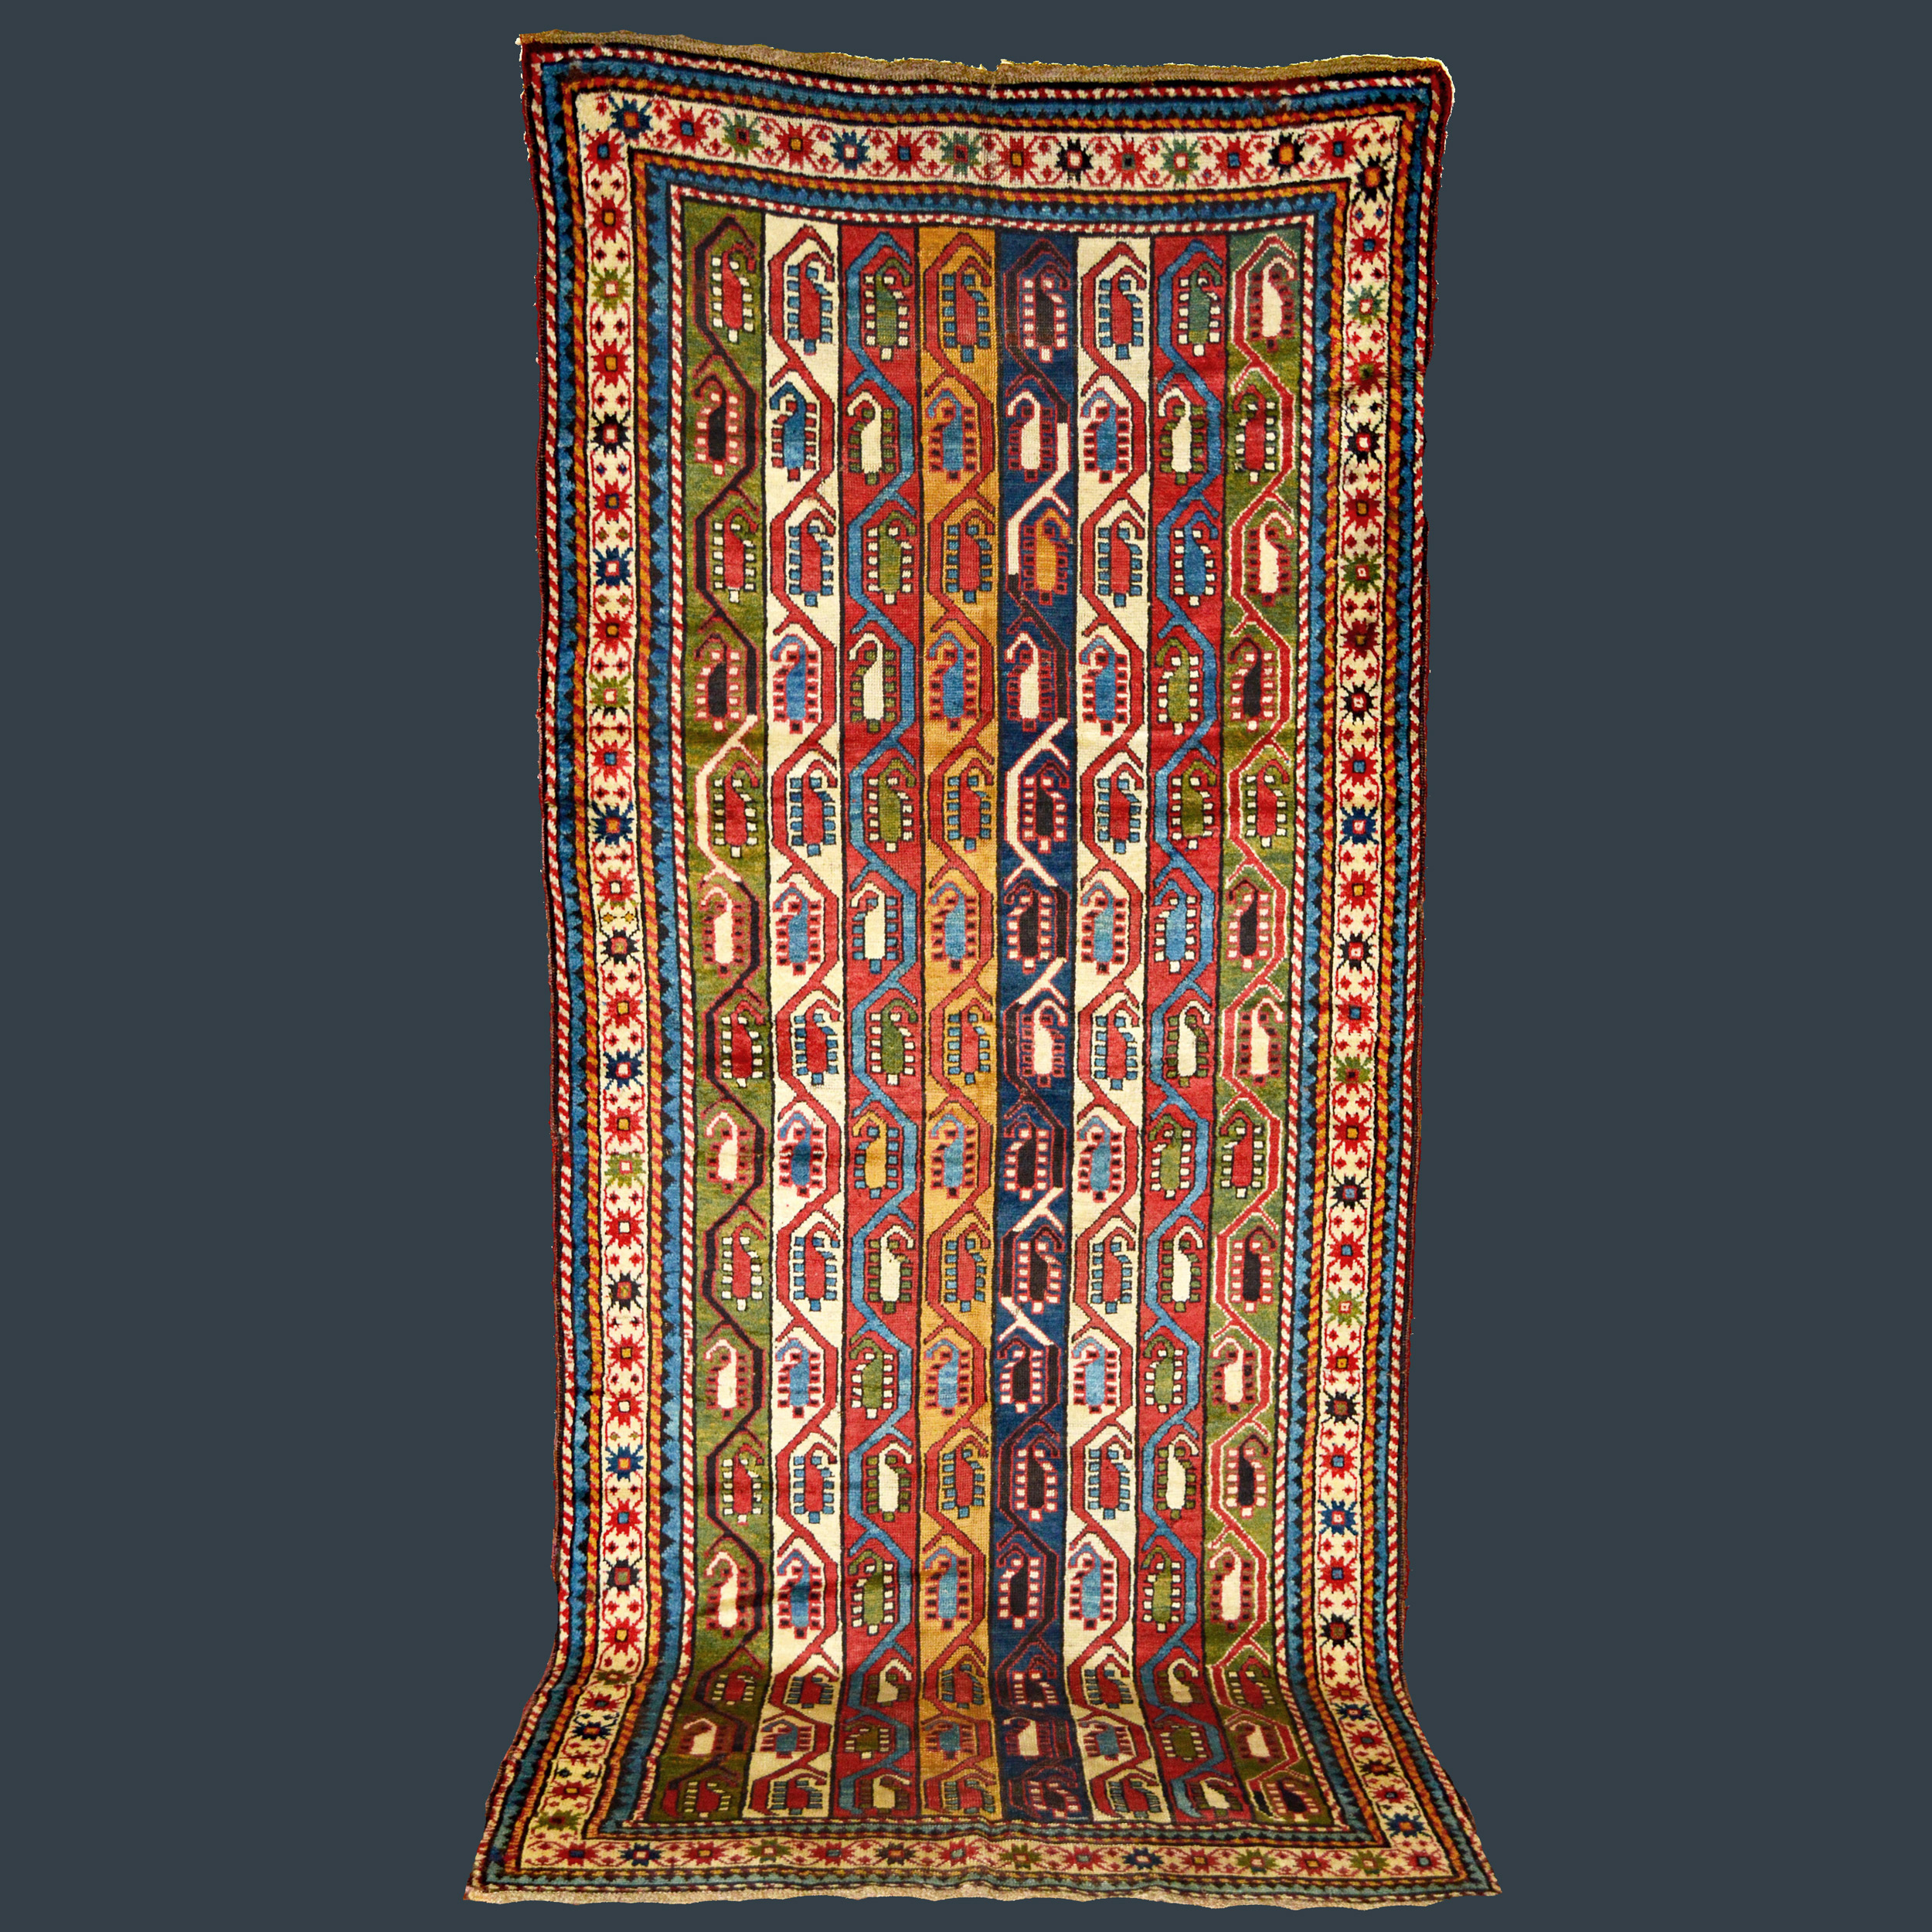 Antique South Caucasian Karabagh rug with polychromatic vertical bands of color containing Both